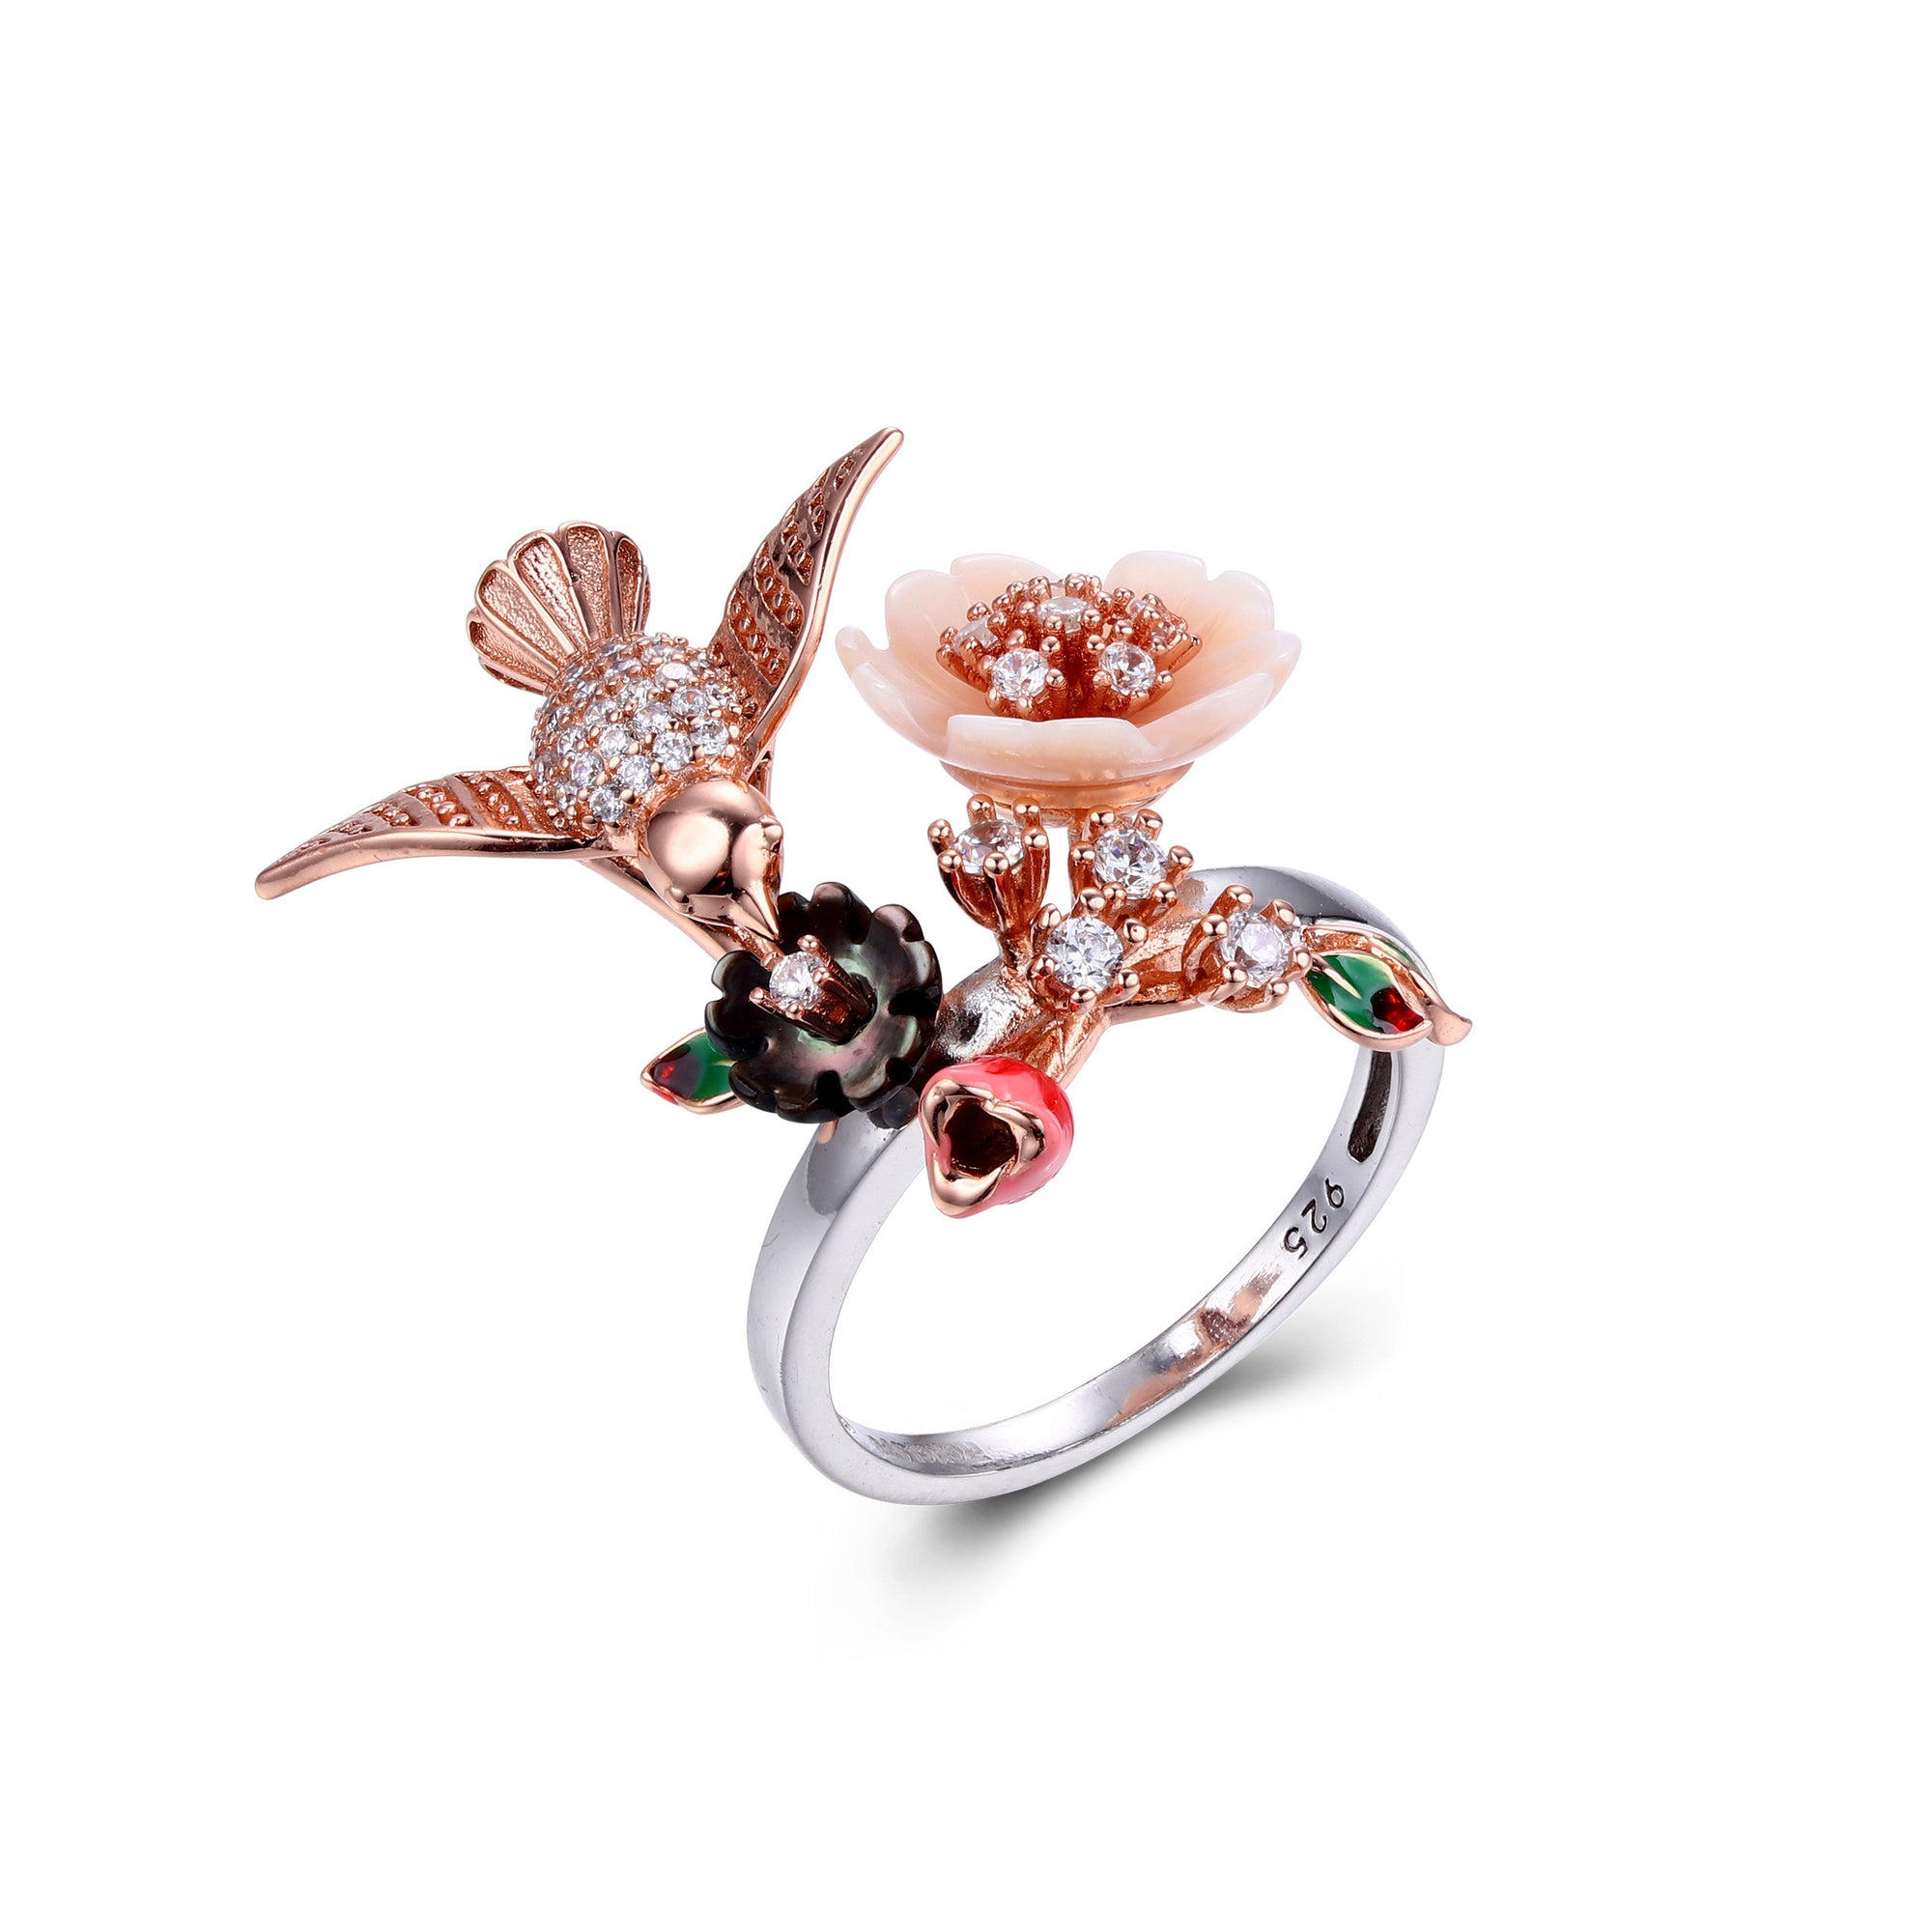 Bird Floral Ring - penelope-it.com